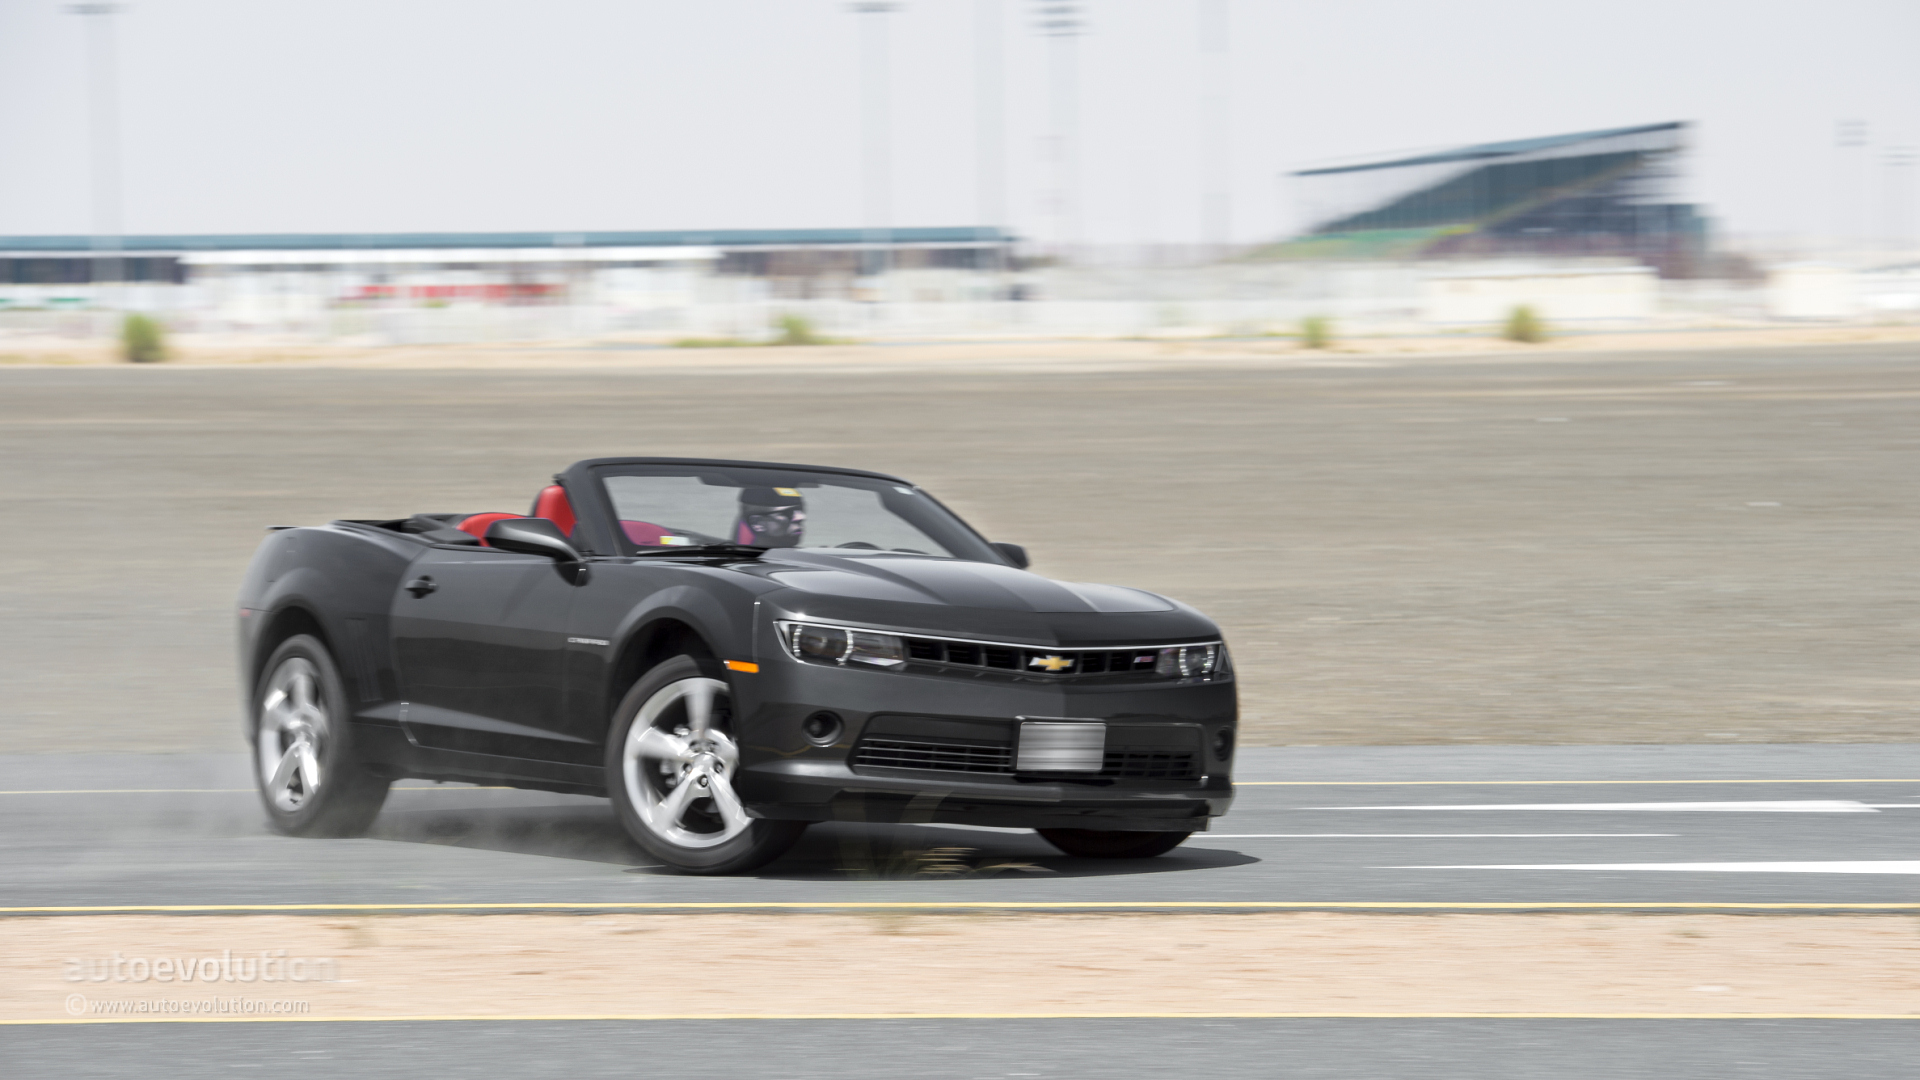 2014 Chevrolet Camaro Convertible photo - 1